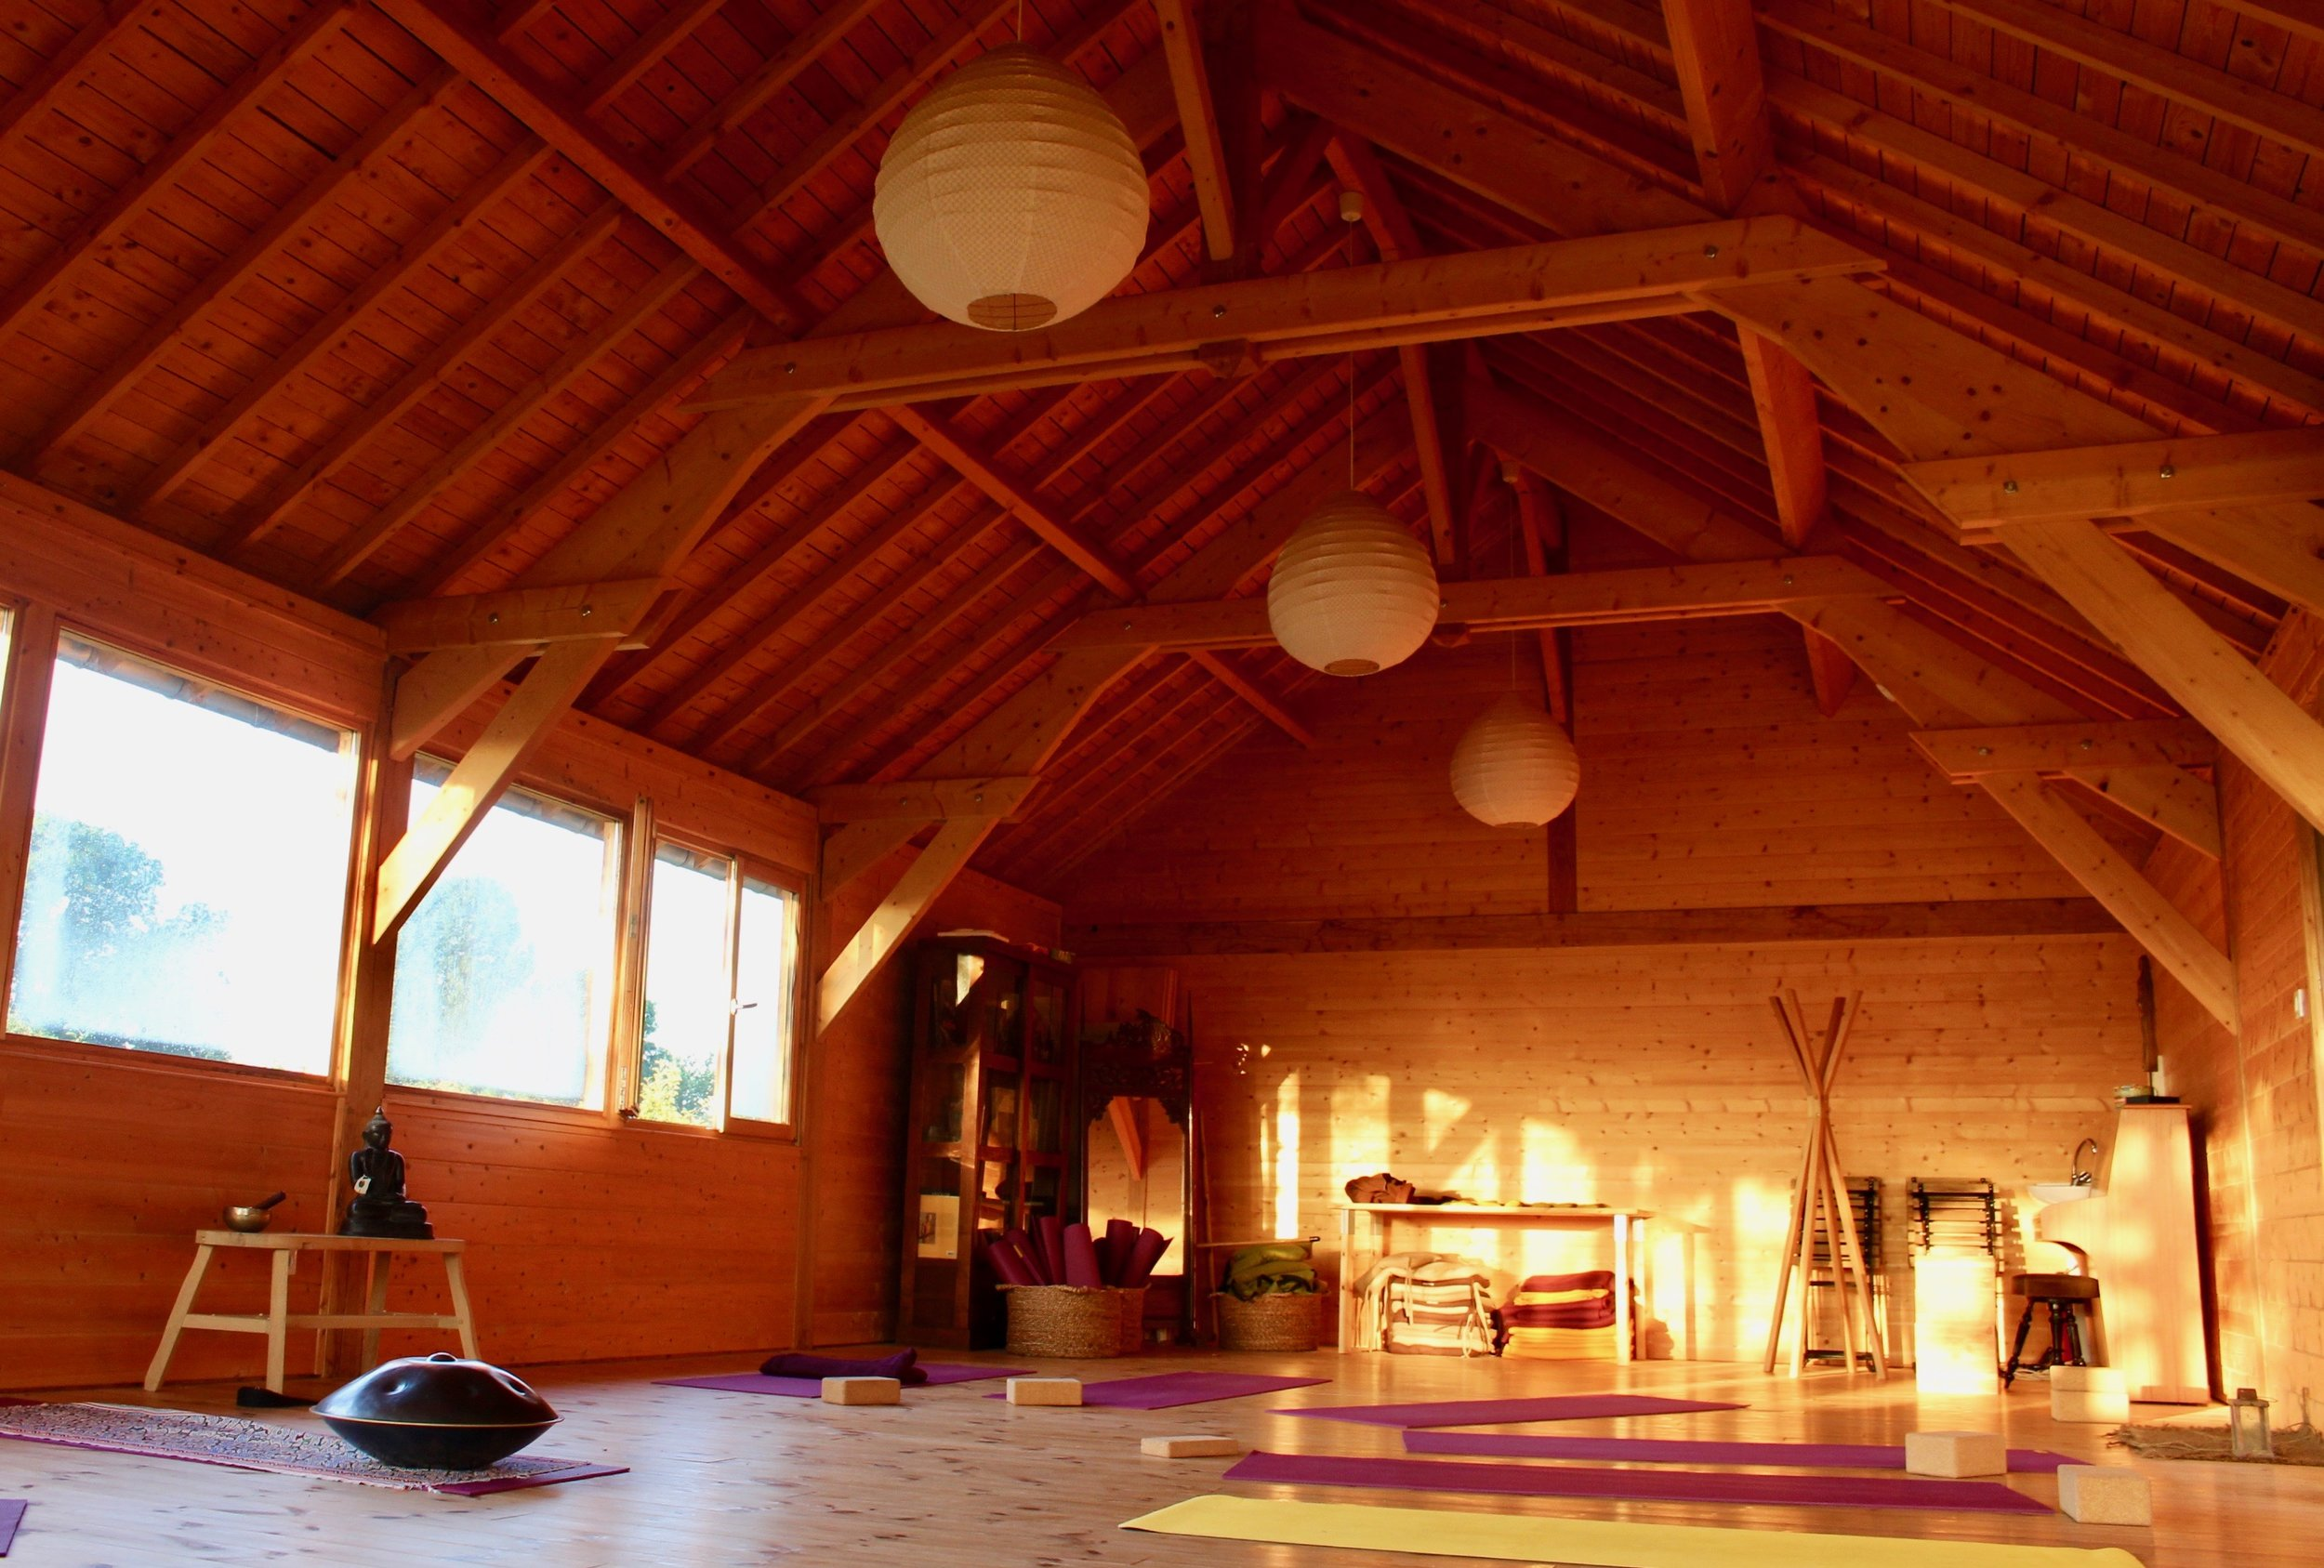 salle-yoga-arbre-aux-etoile-france-franco-stage-ayurveda.jpg